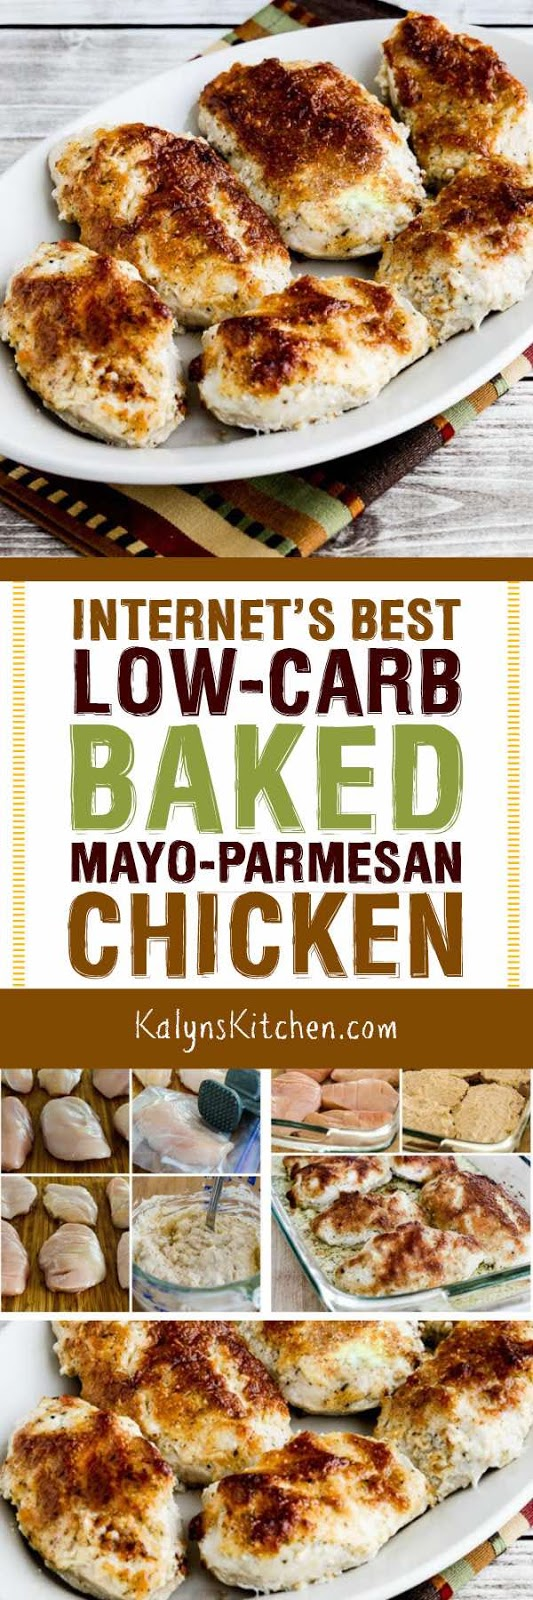 Internet's Best Low-Carb Baked Mayo-Parmesan en (VIDEO ...